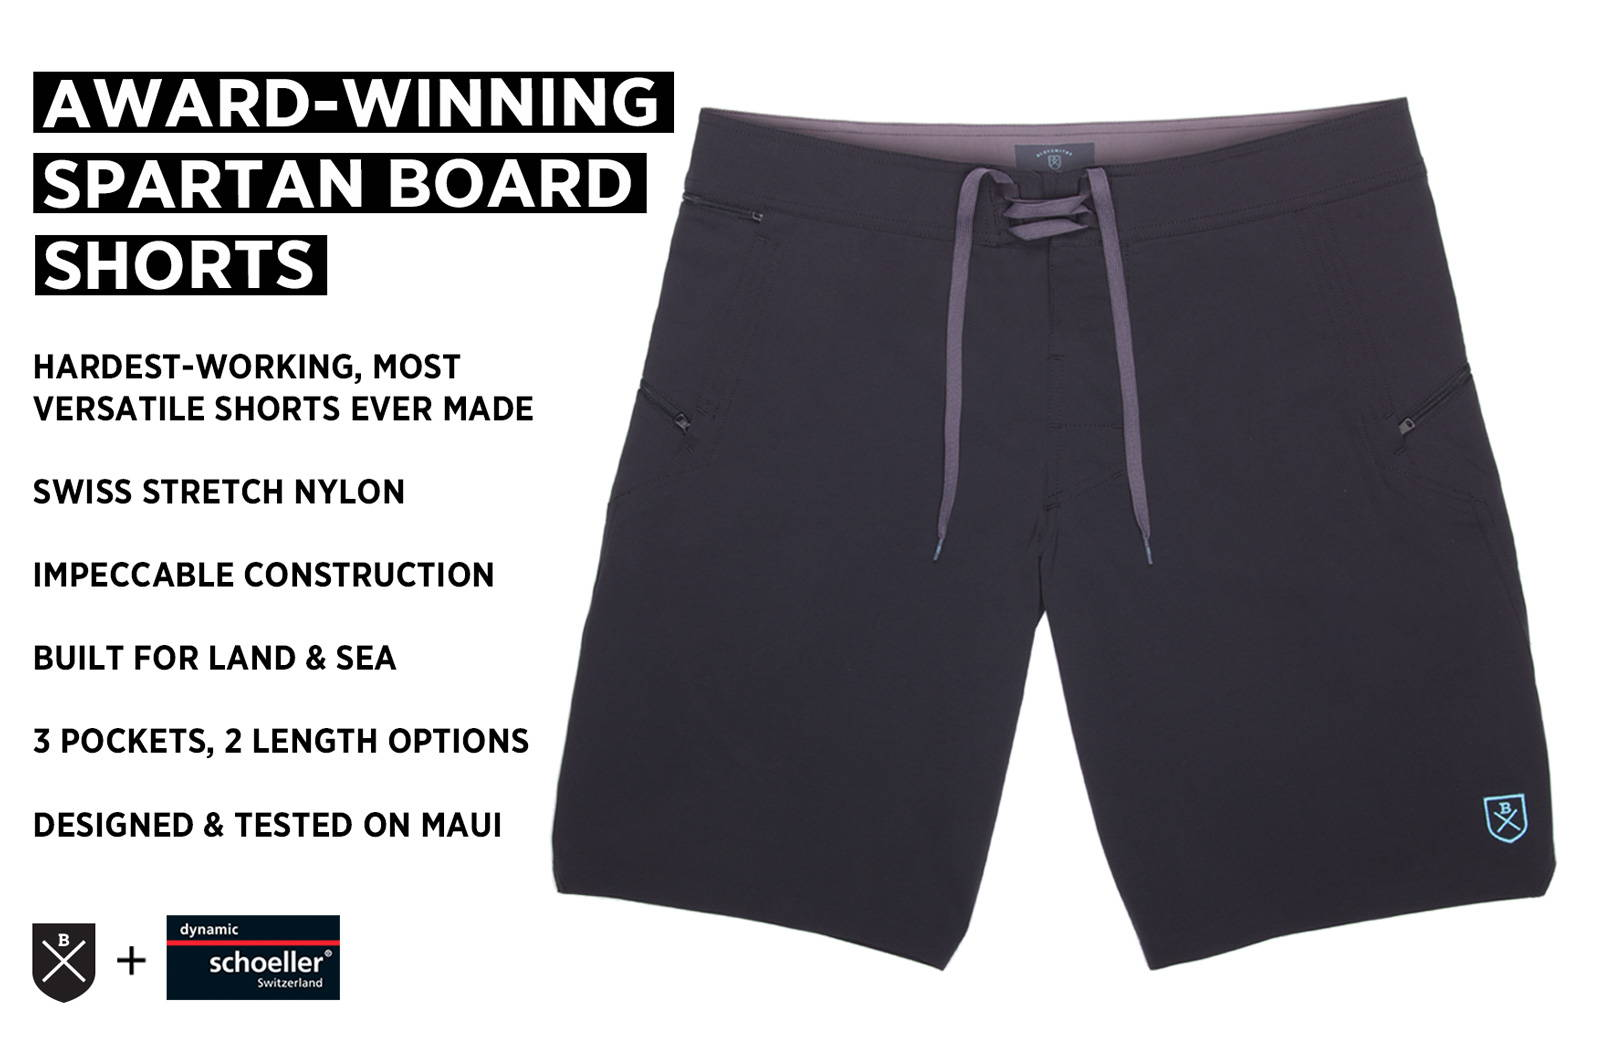 Why Bluesmiths built the Spartan board shorts